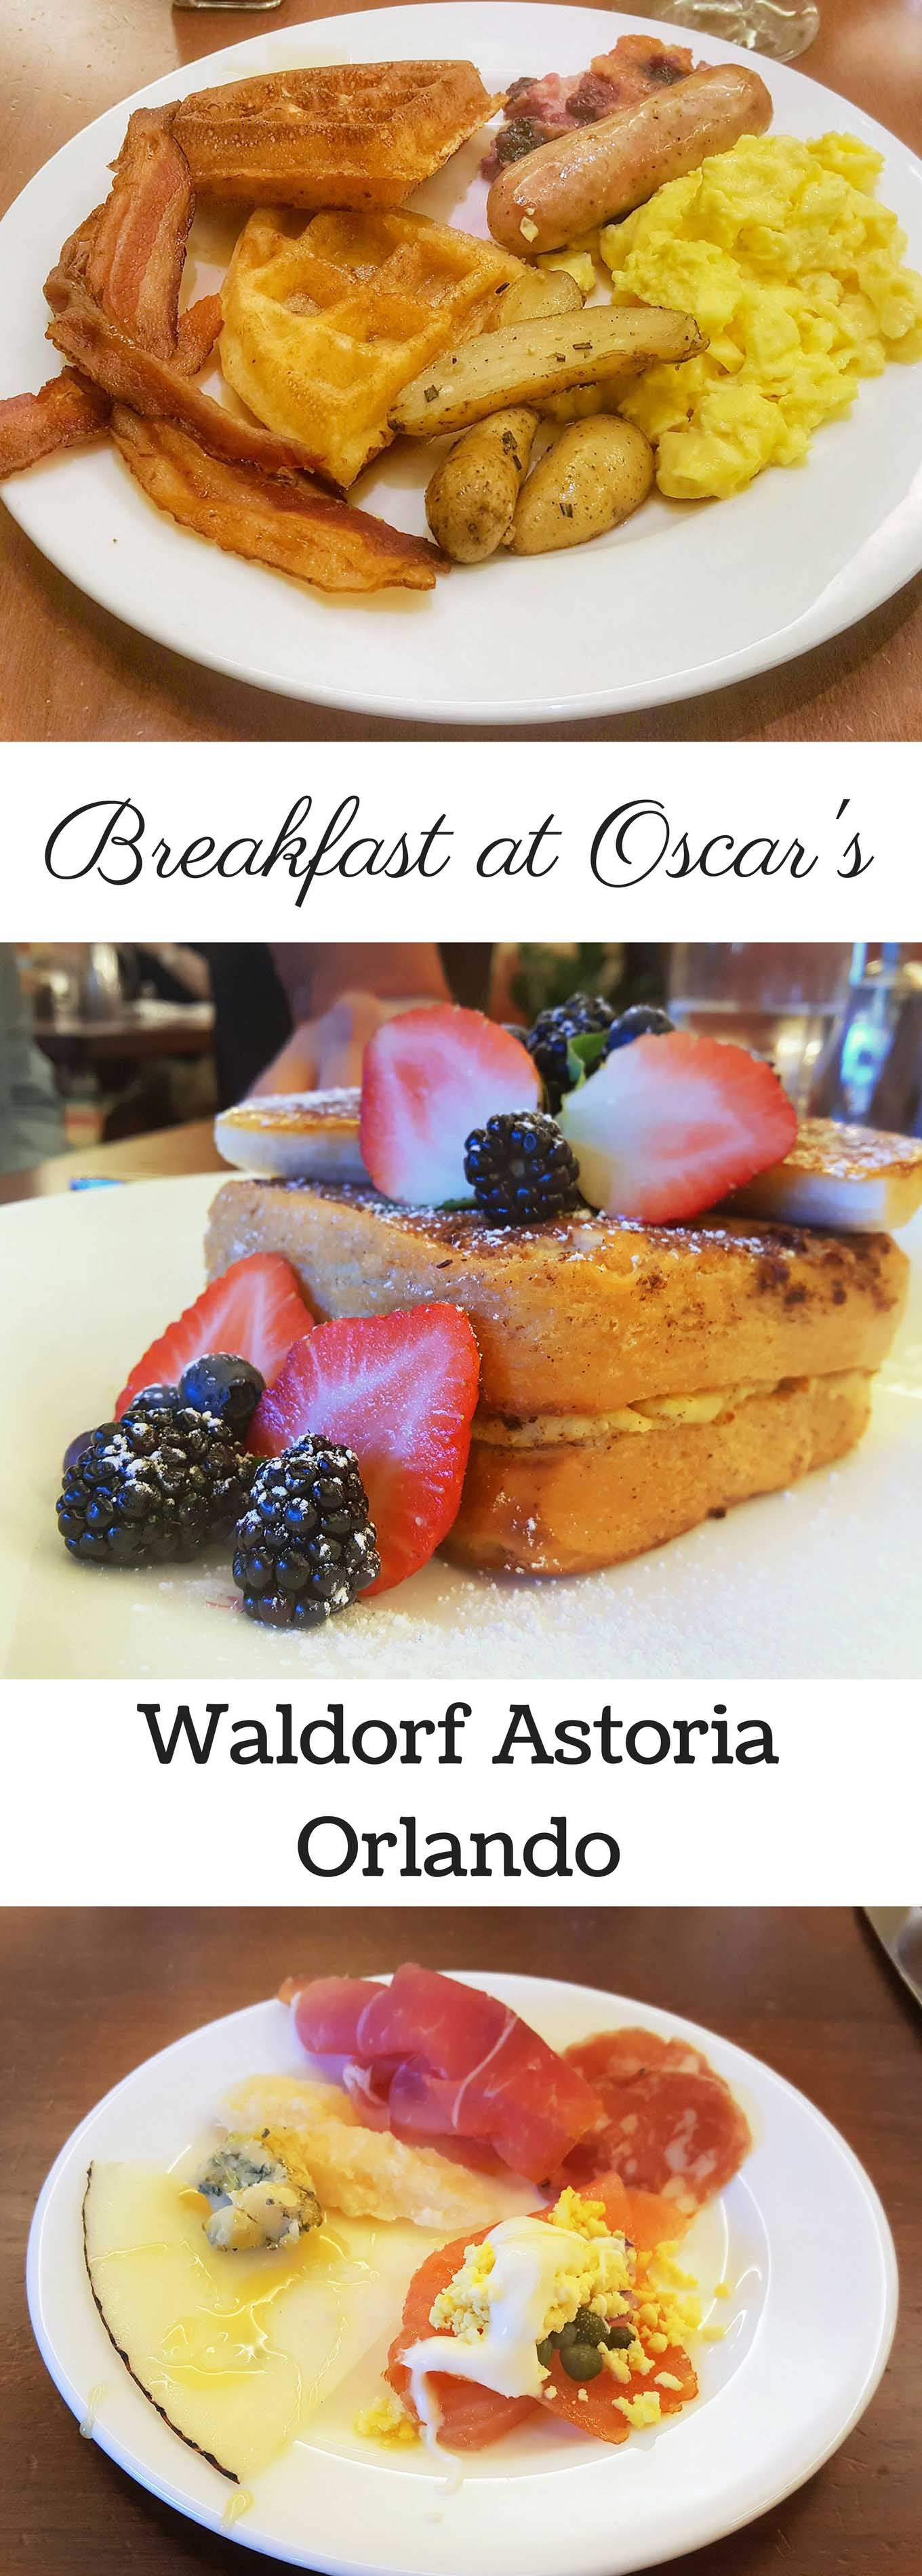 Breakfast at Oscar's in the Waldorf Astoria Orlando is most amazing breakfast experience you'll ever have